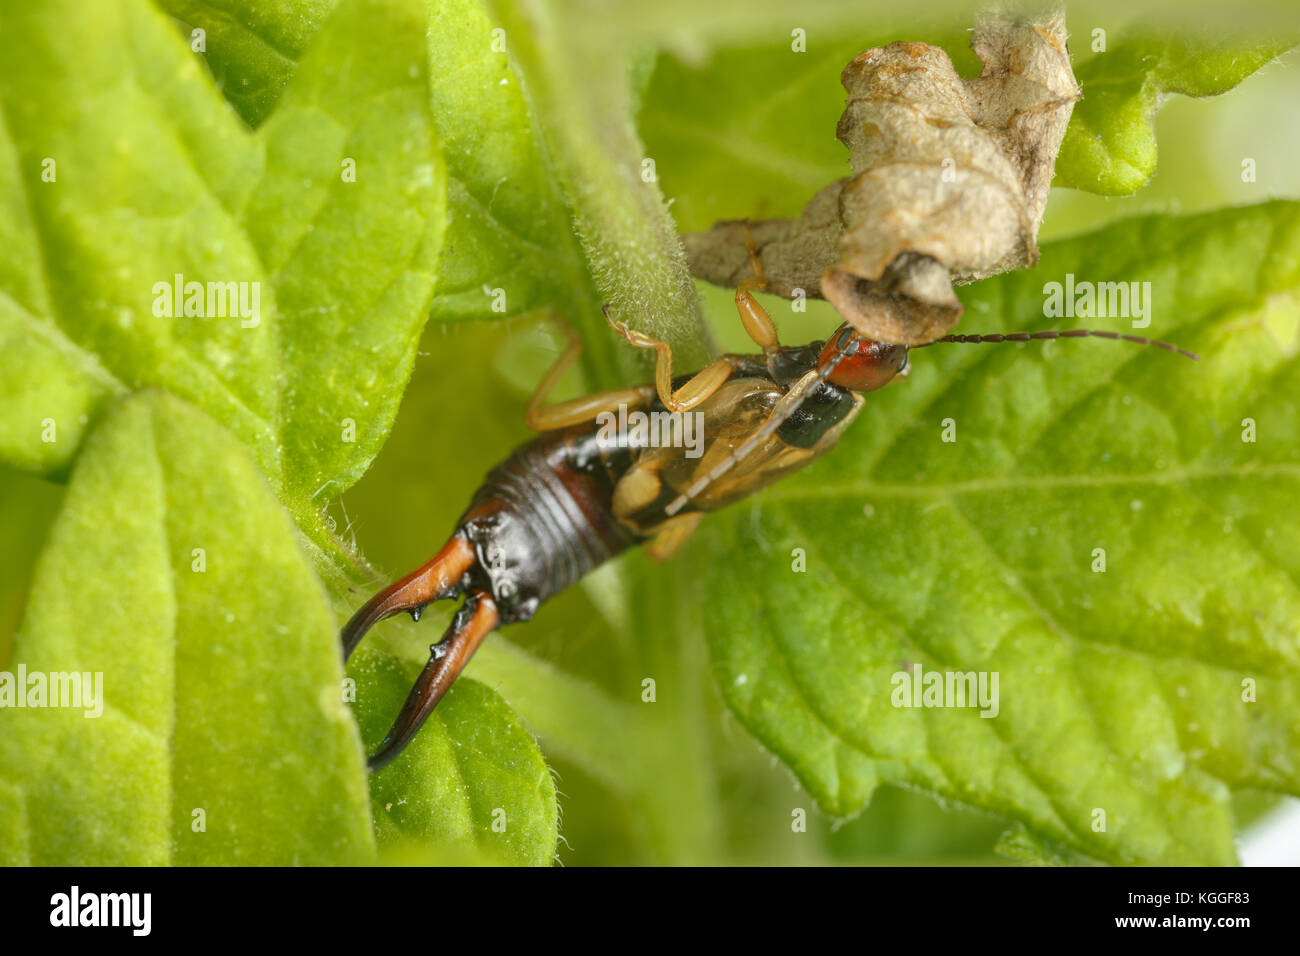 Pests Eating Plant Stock Photos & Pests Eating Plant Stock Images